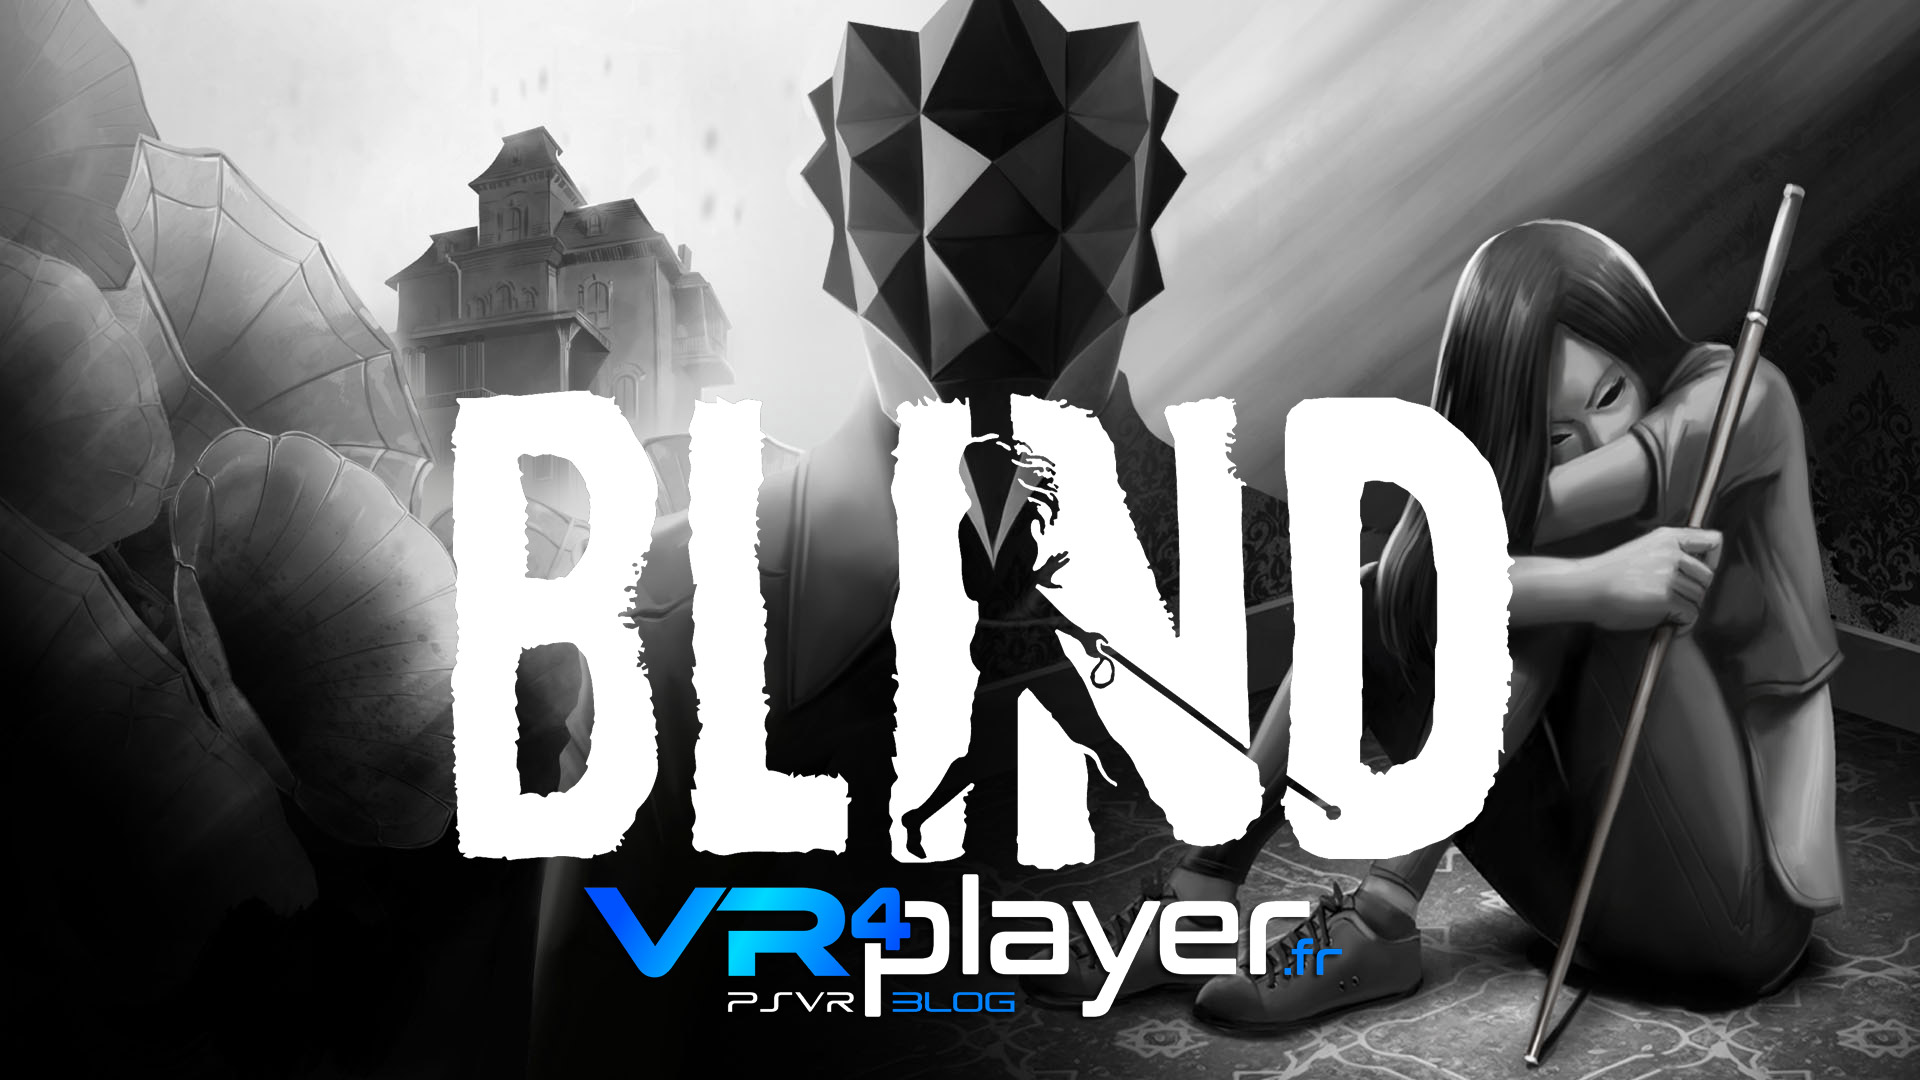 Blind le 18 septembre sur PSVR vr4player.fr